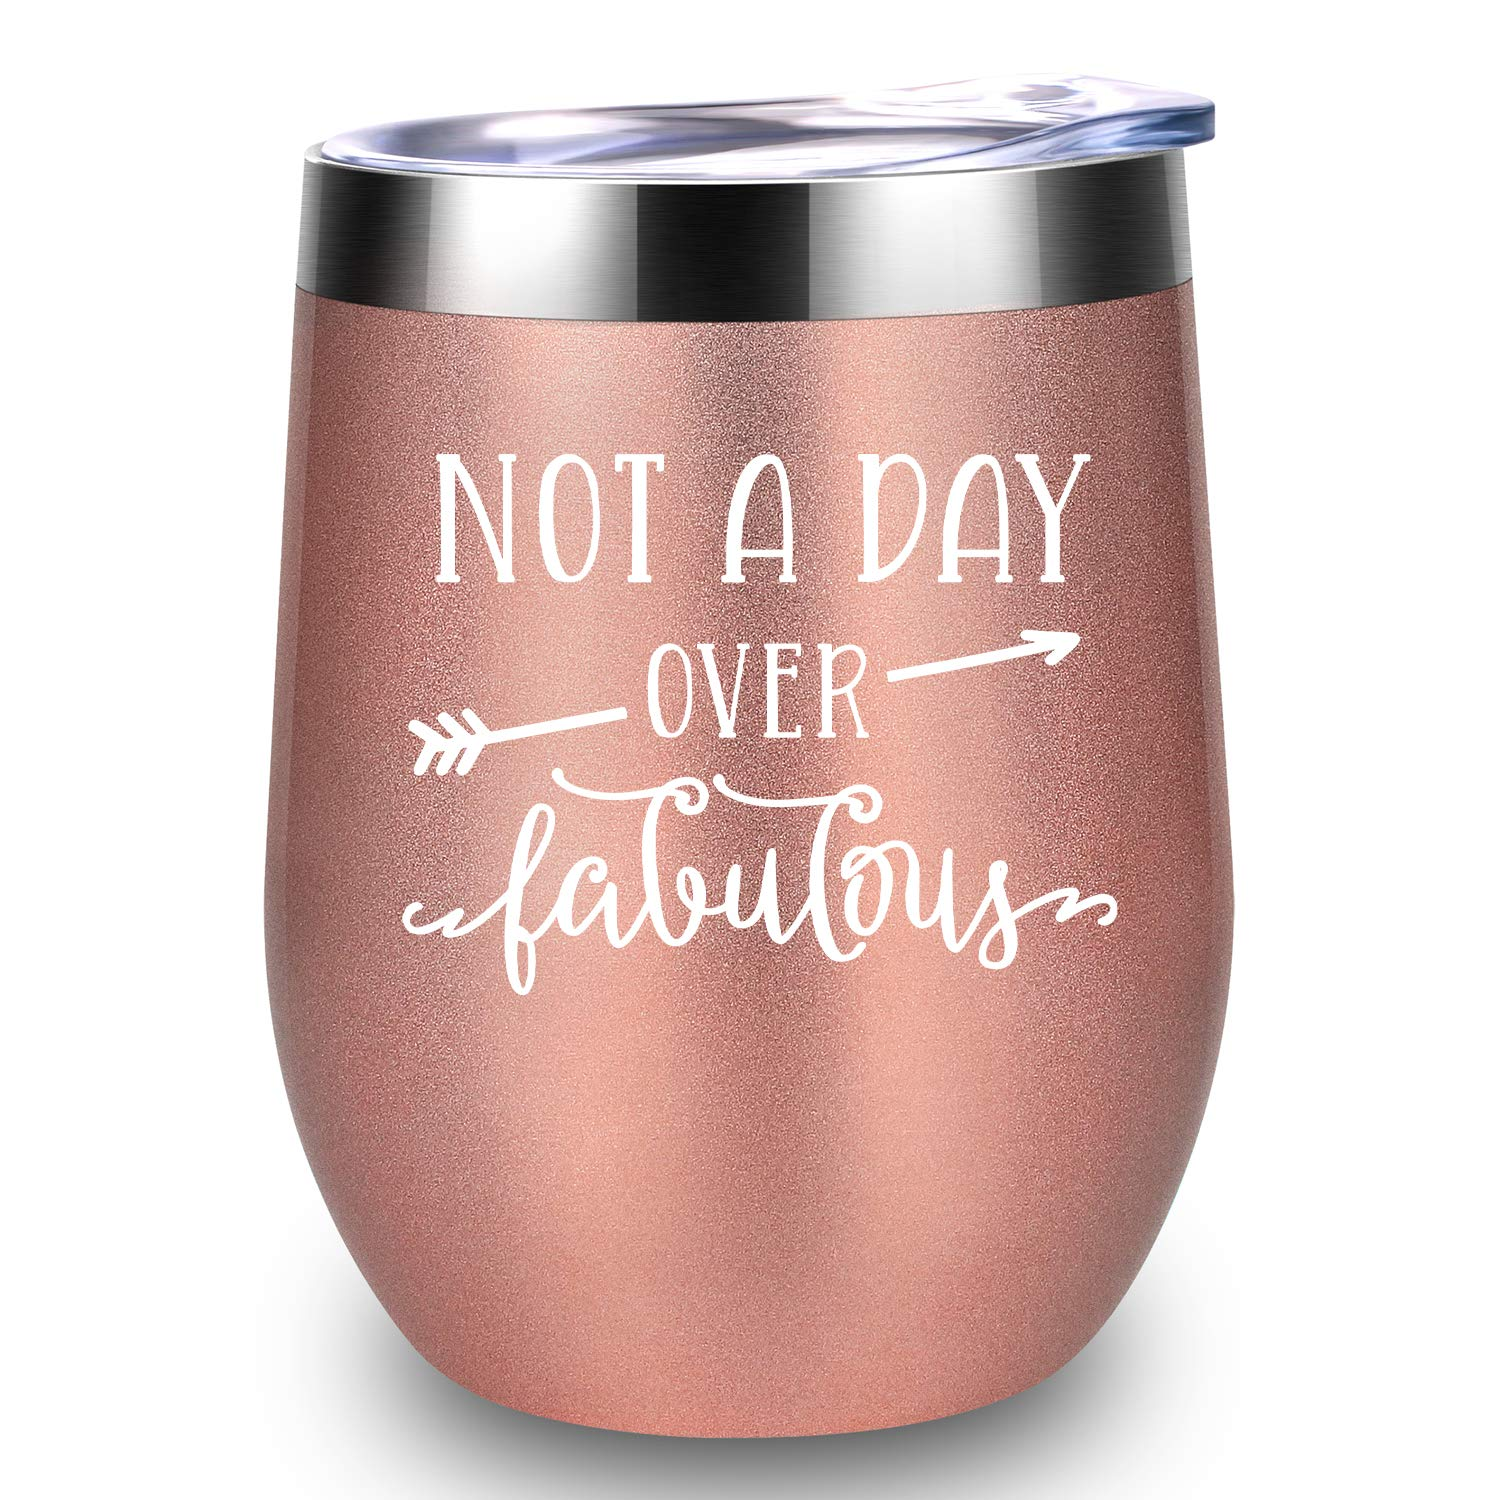 Not A Day Over Fabulous - LEADO Stainless Steel Insulated Wine Tumbler with Lid - Funny Novelty Birthday Mothers Day Retirement Gifts Ideas for Her Women - 30th 40th 50th 60th 70th Party Decorations by LEADO (Image #1)